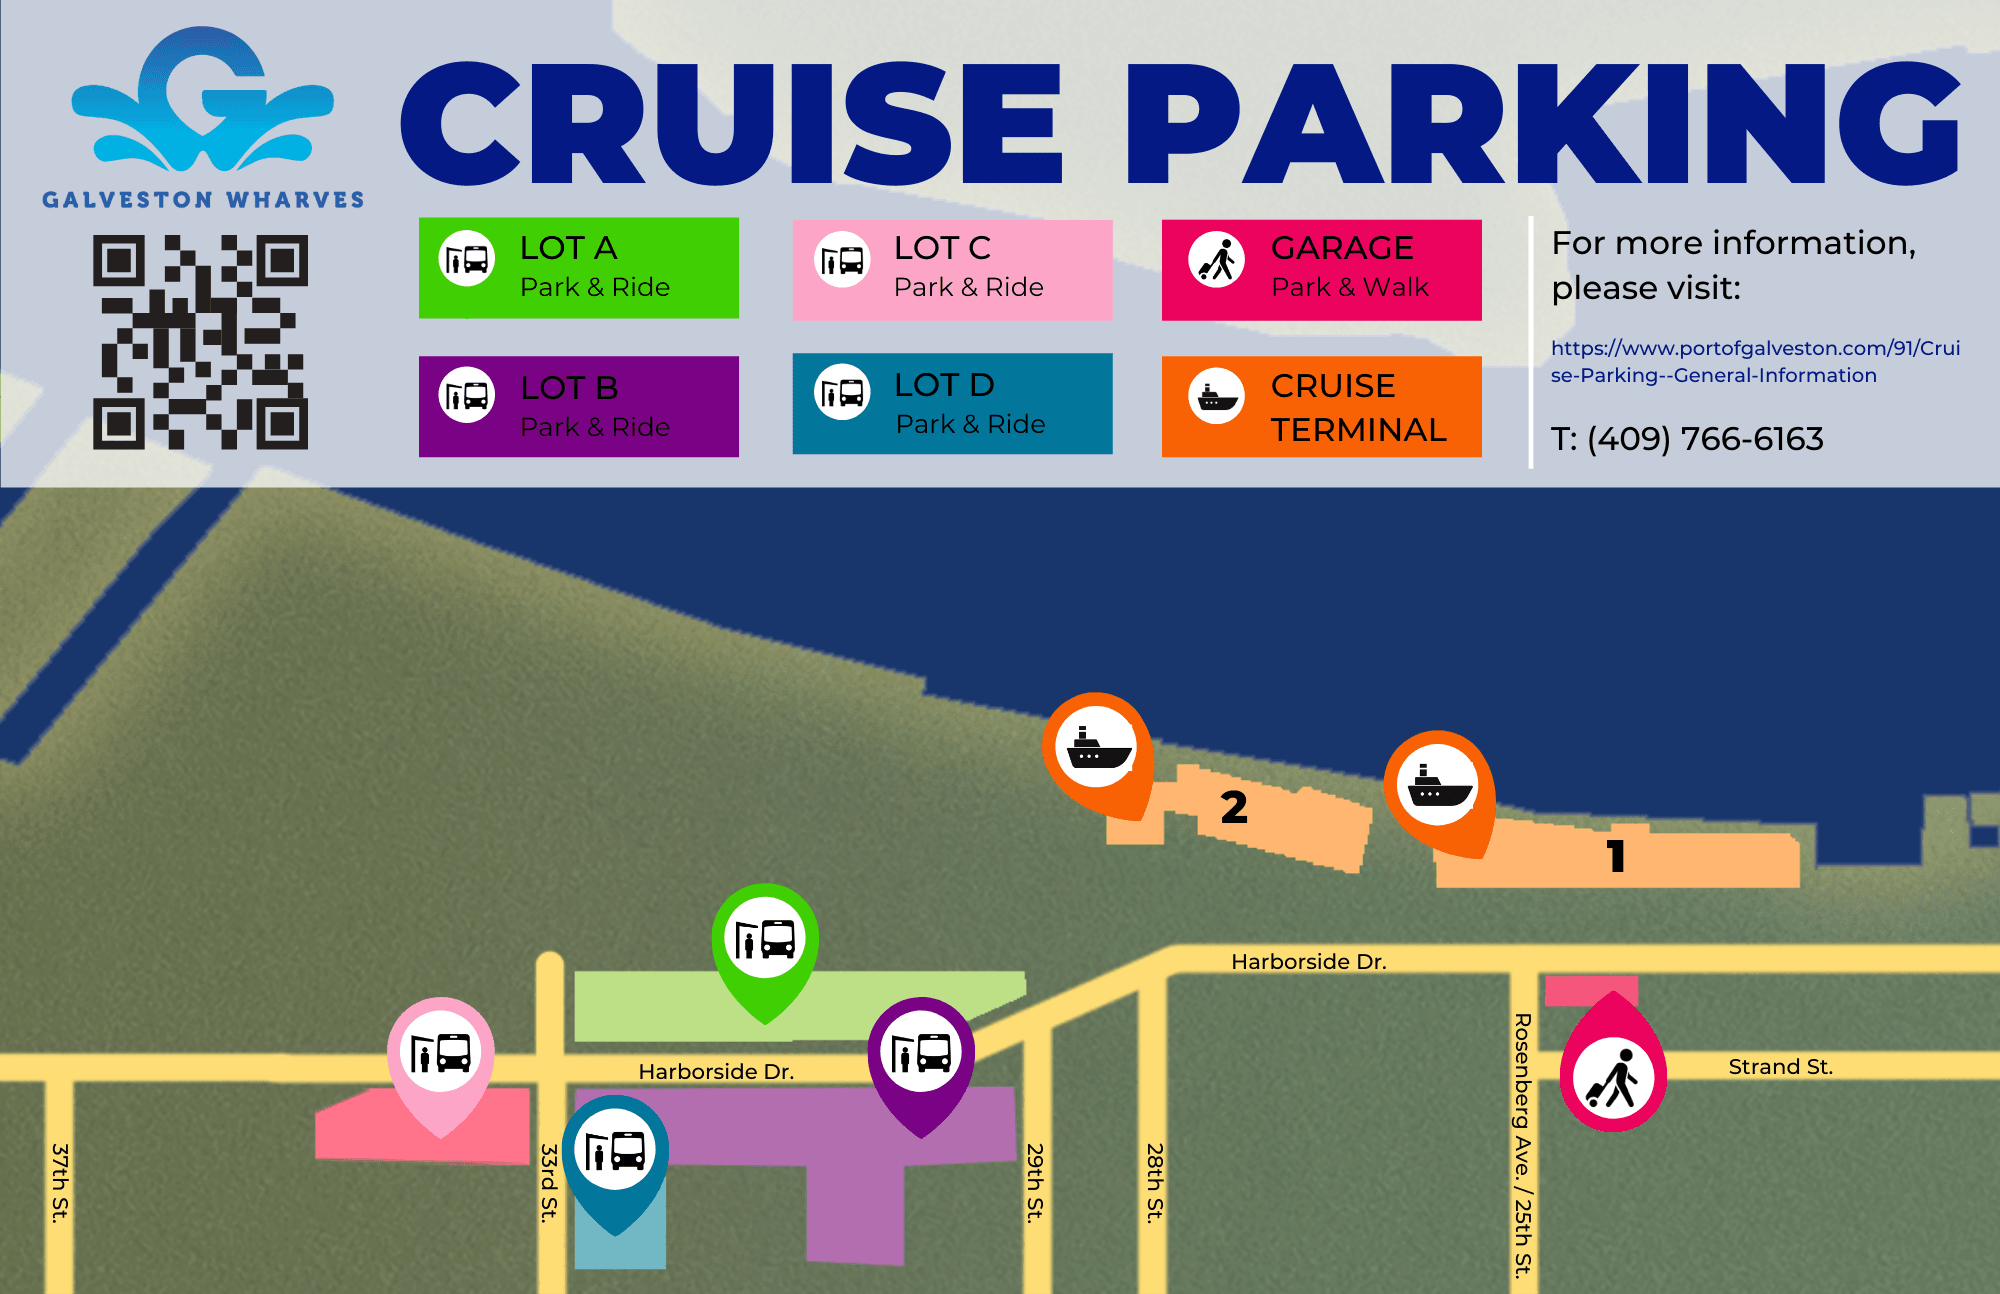 CRUISE PARKING MAP